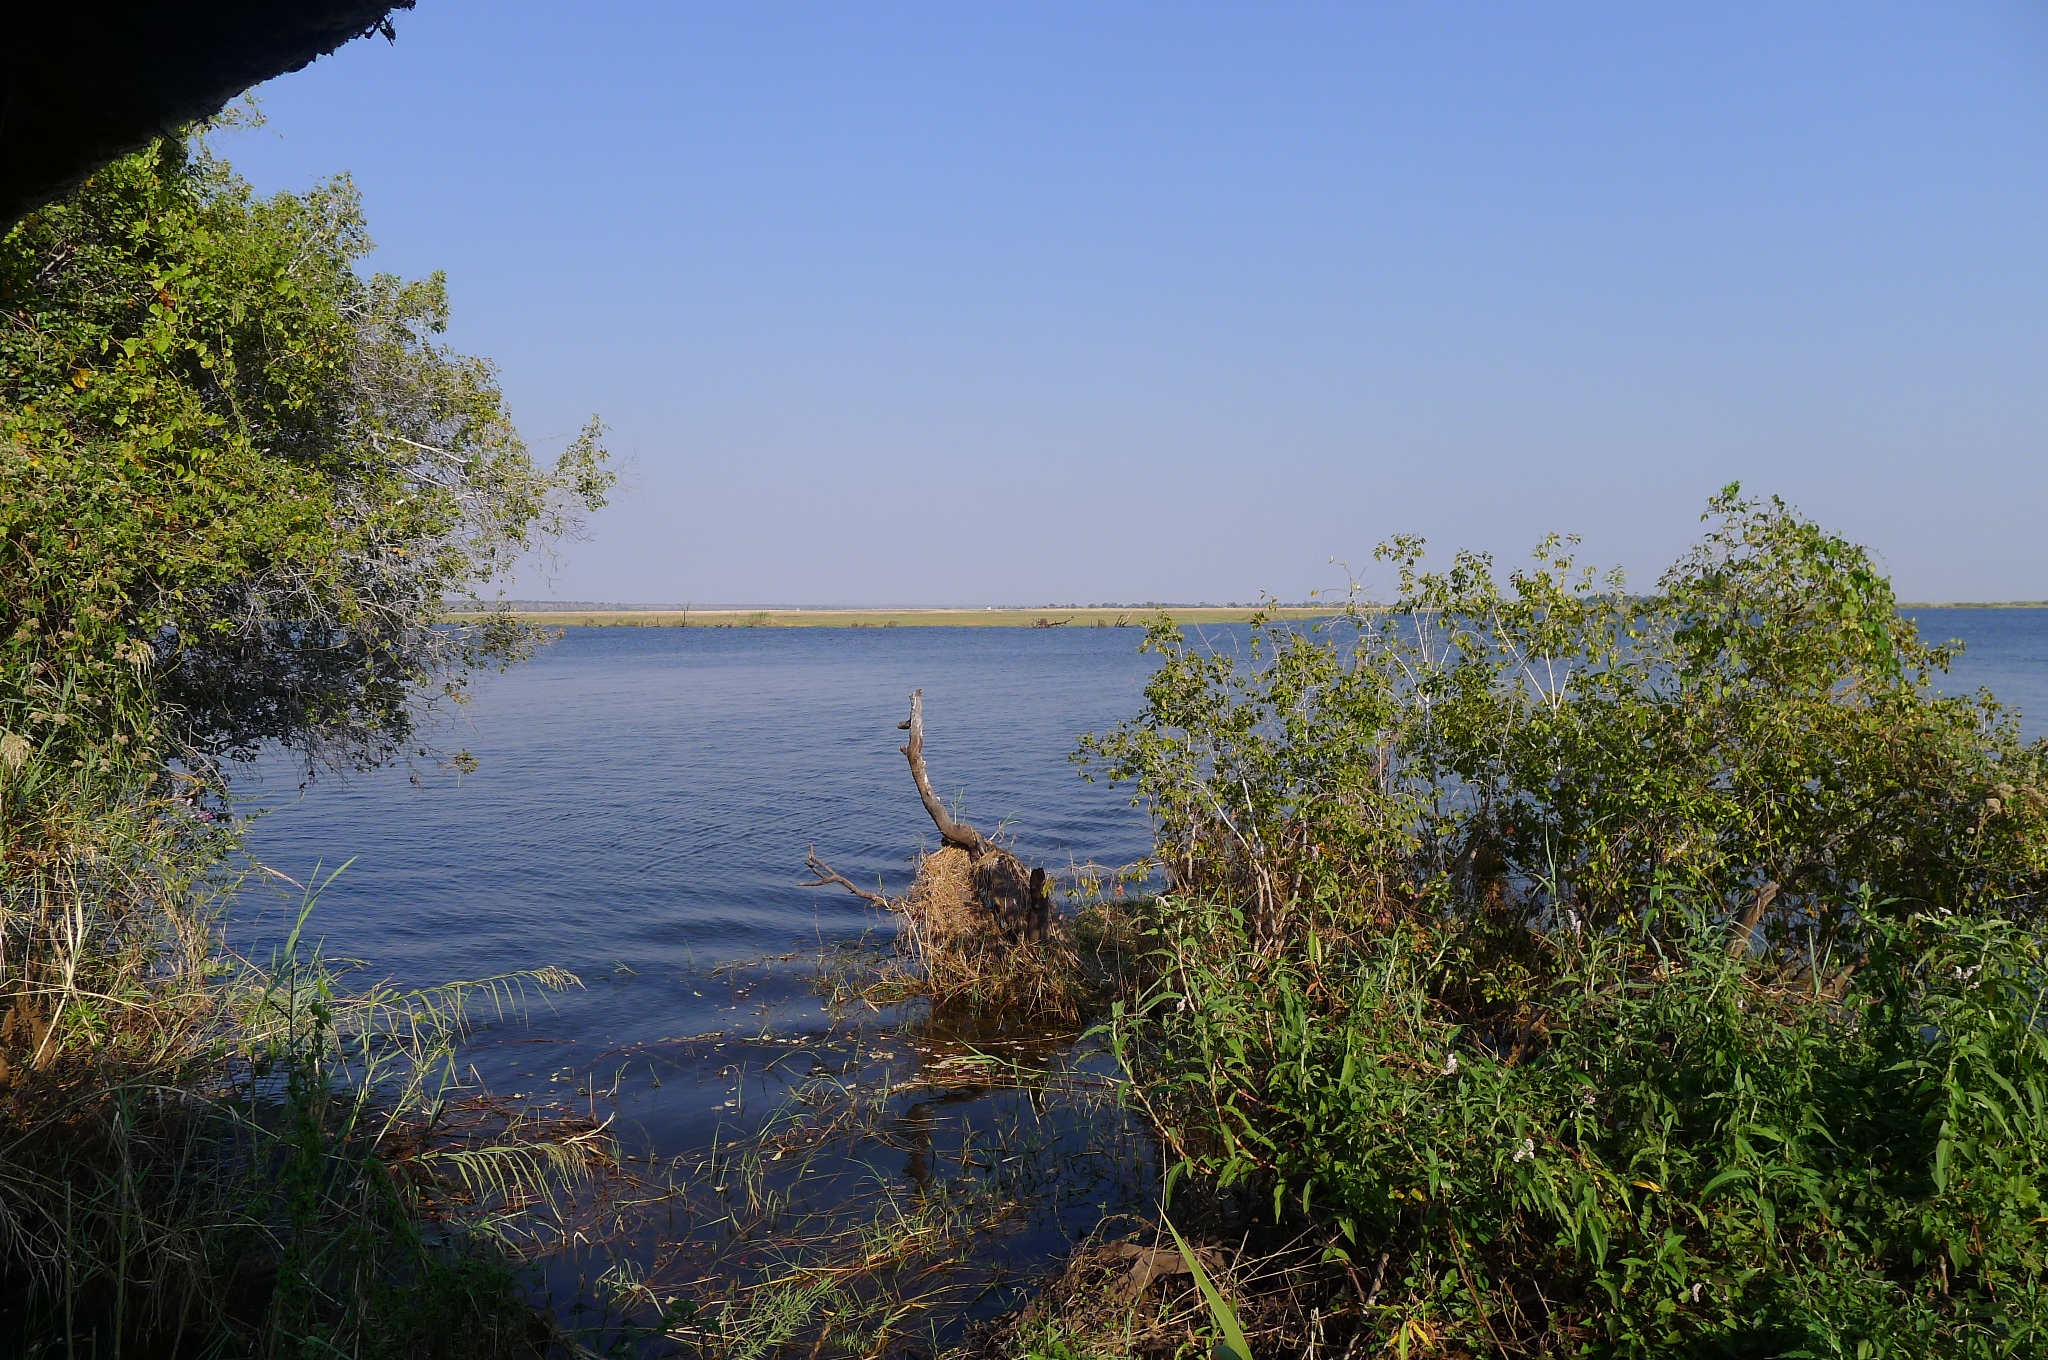 Zambezi River ... Zambia on other side